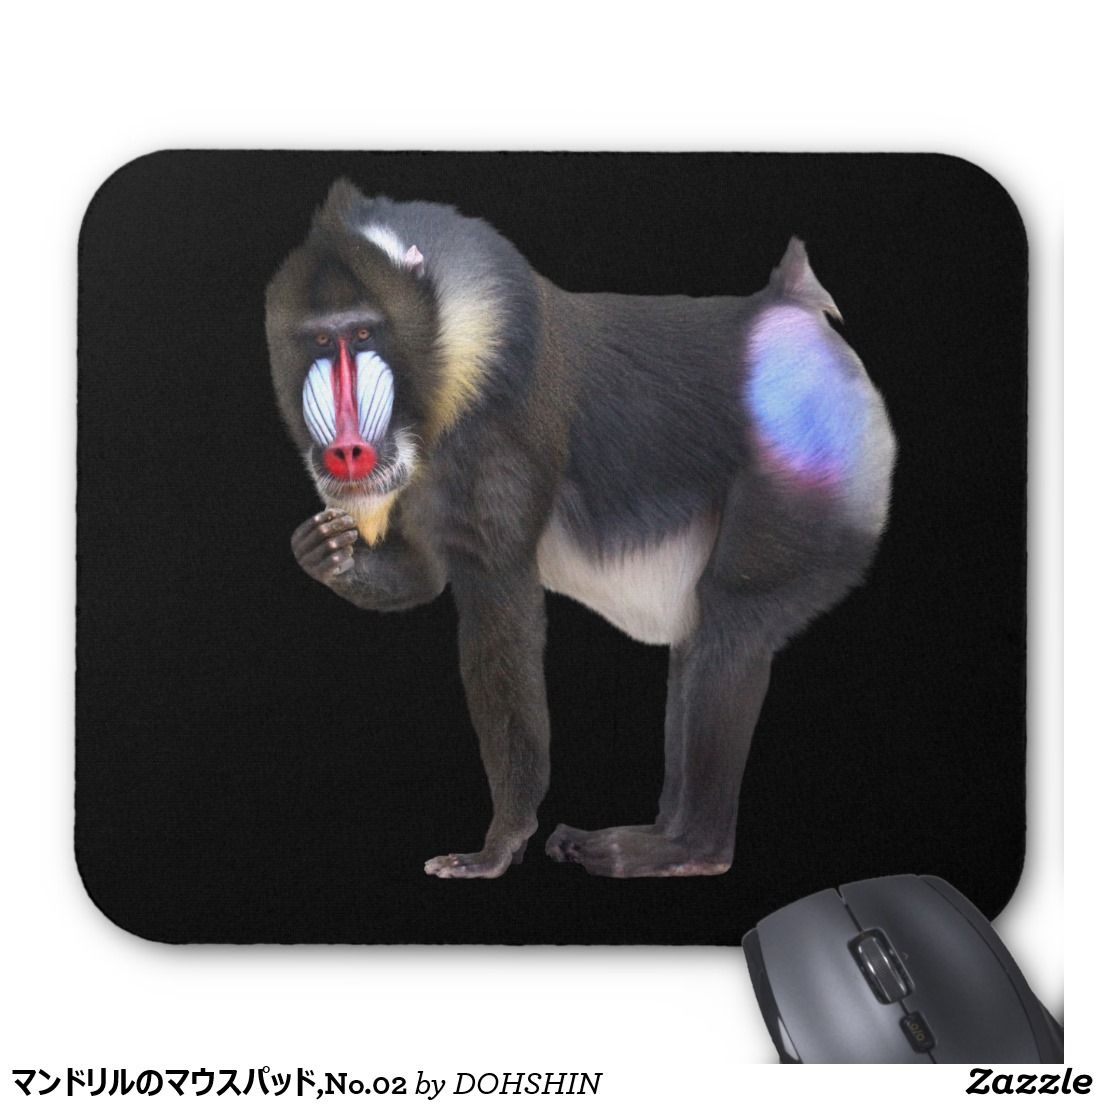 Mouse pad of mandrill, No.02